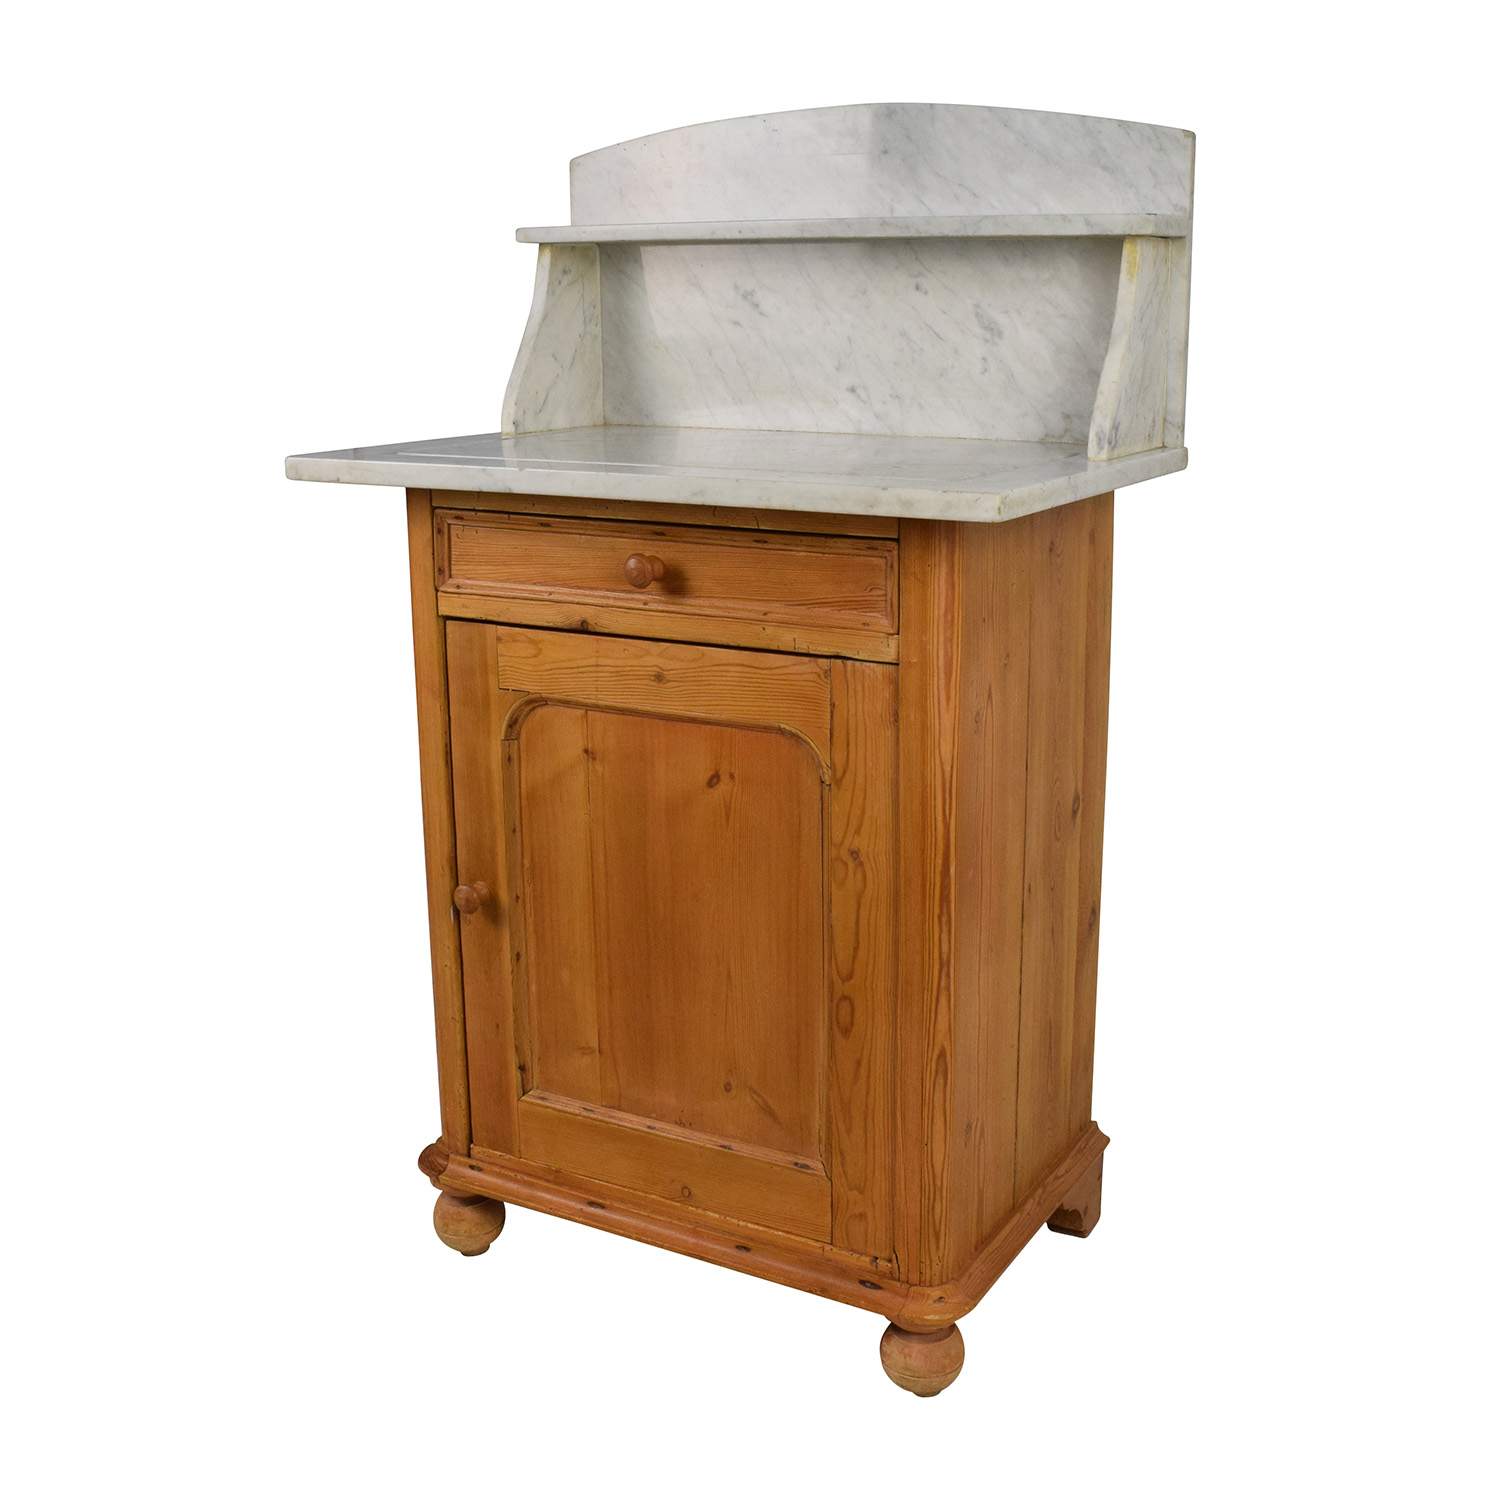 ... Evergreen Evergreen Rustic Marble Topped Storage Cabinet Cabinets U0026  Sideboards ...